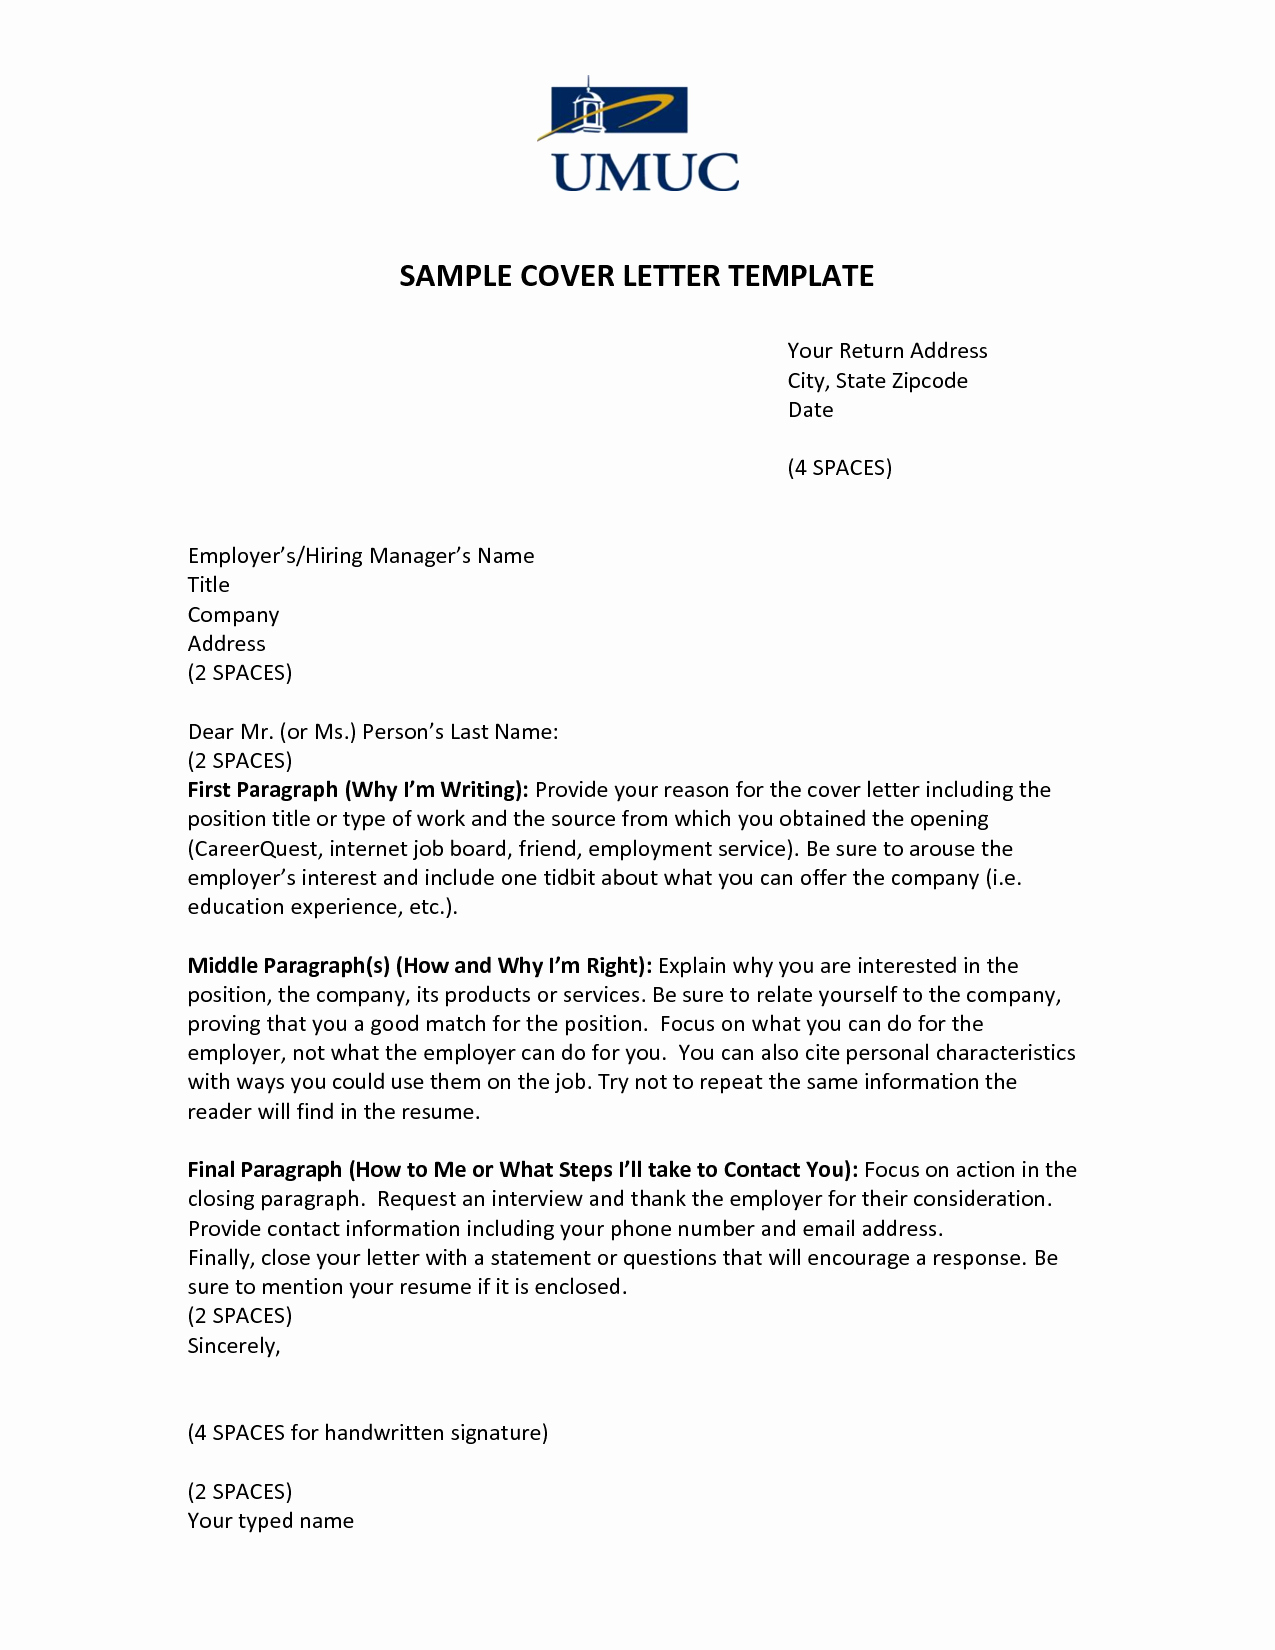 Community Service Letter Template for Students - Munity Service Letter Re Mendation Fresh Elegant Cover